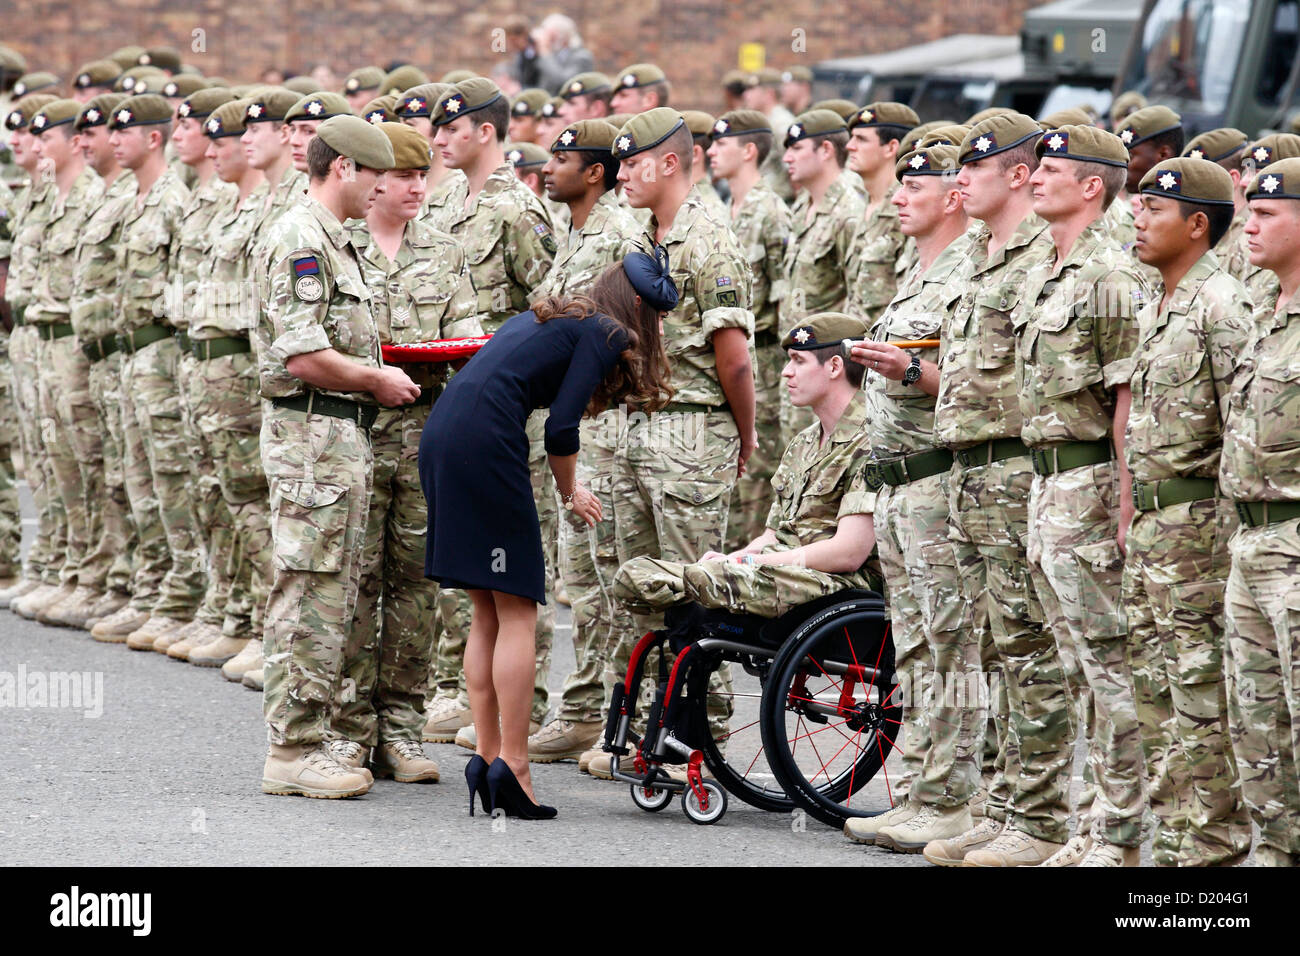 The Duchess of Cambridge, Kate Middleton, hands out operational medals to soldiers from 1st Battalion Irish Guards. - Stock Image